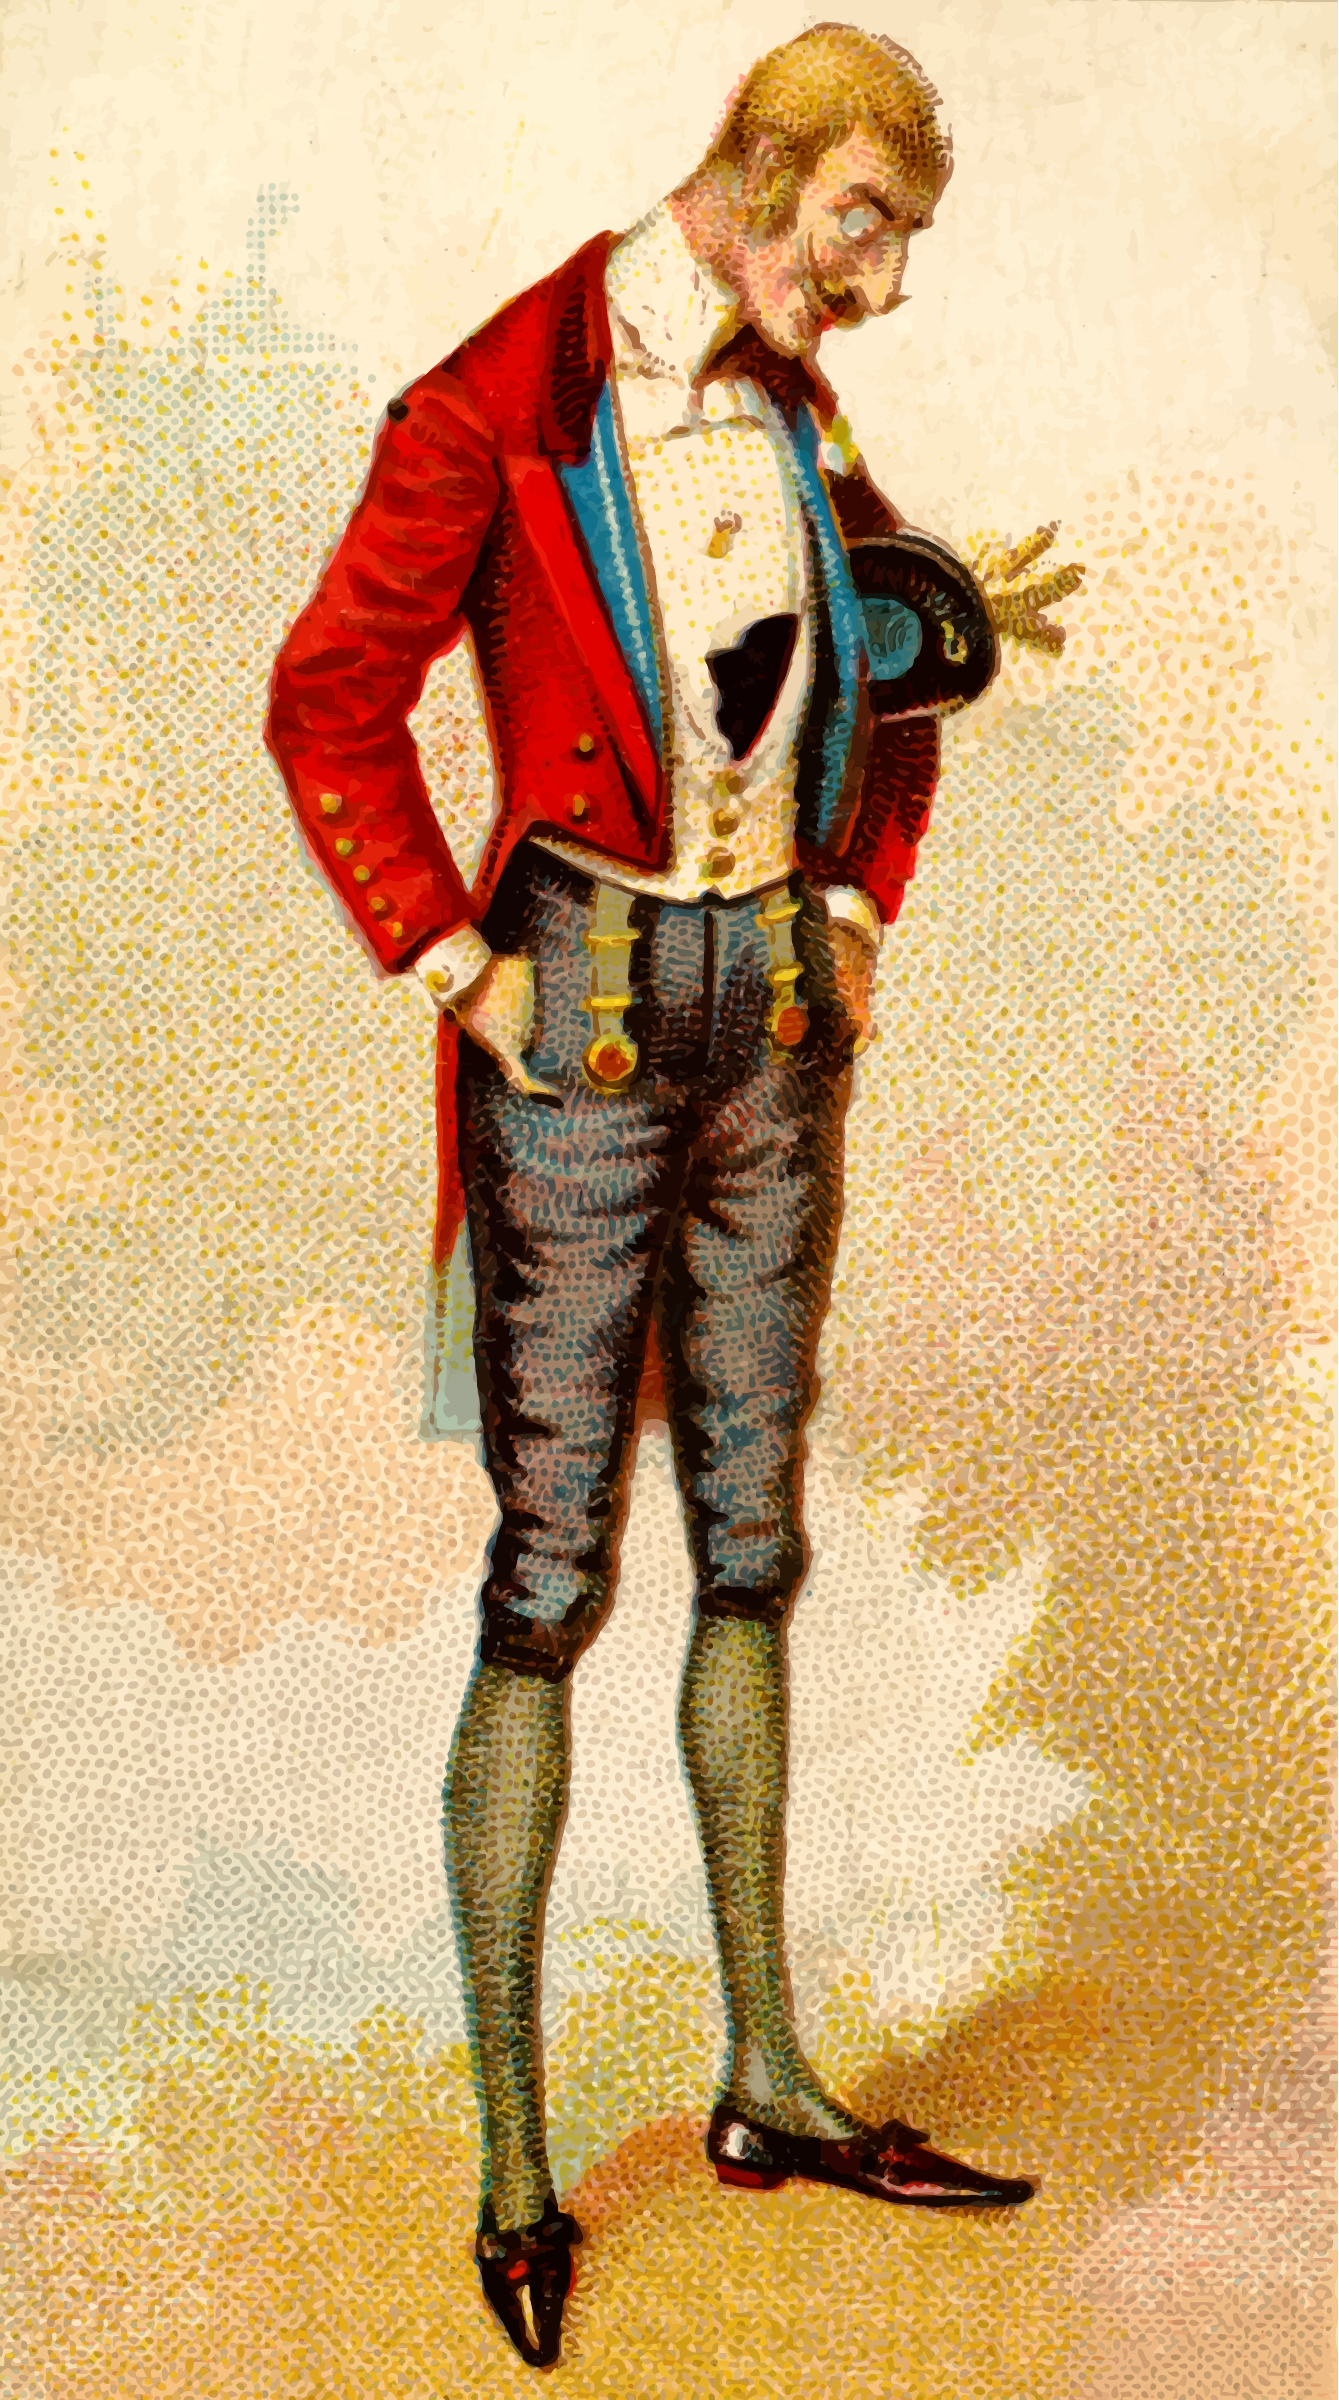 Cigarette card - British Diplomat by Firkin